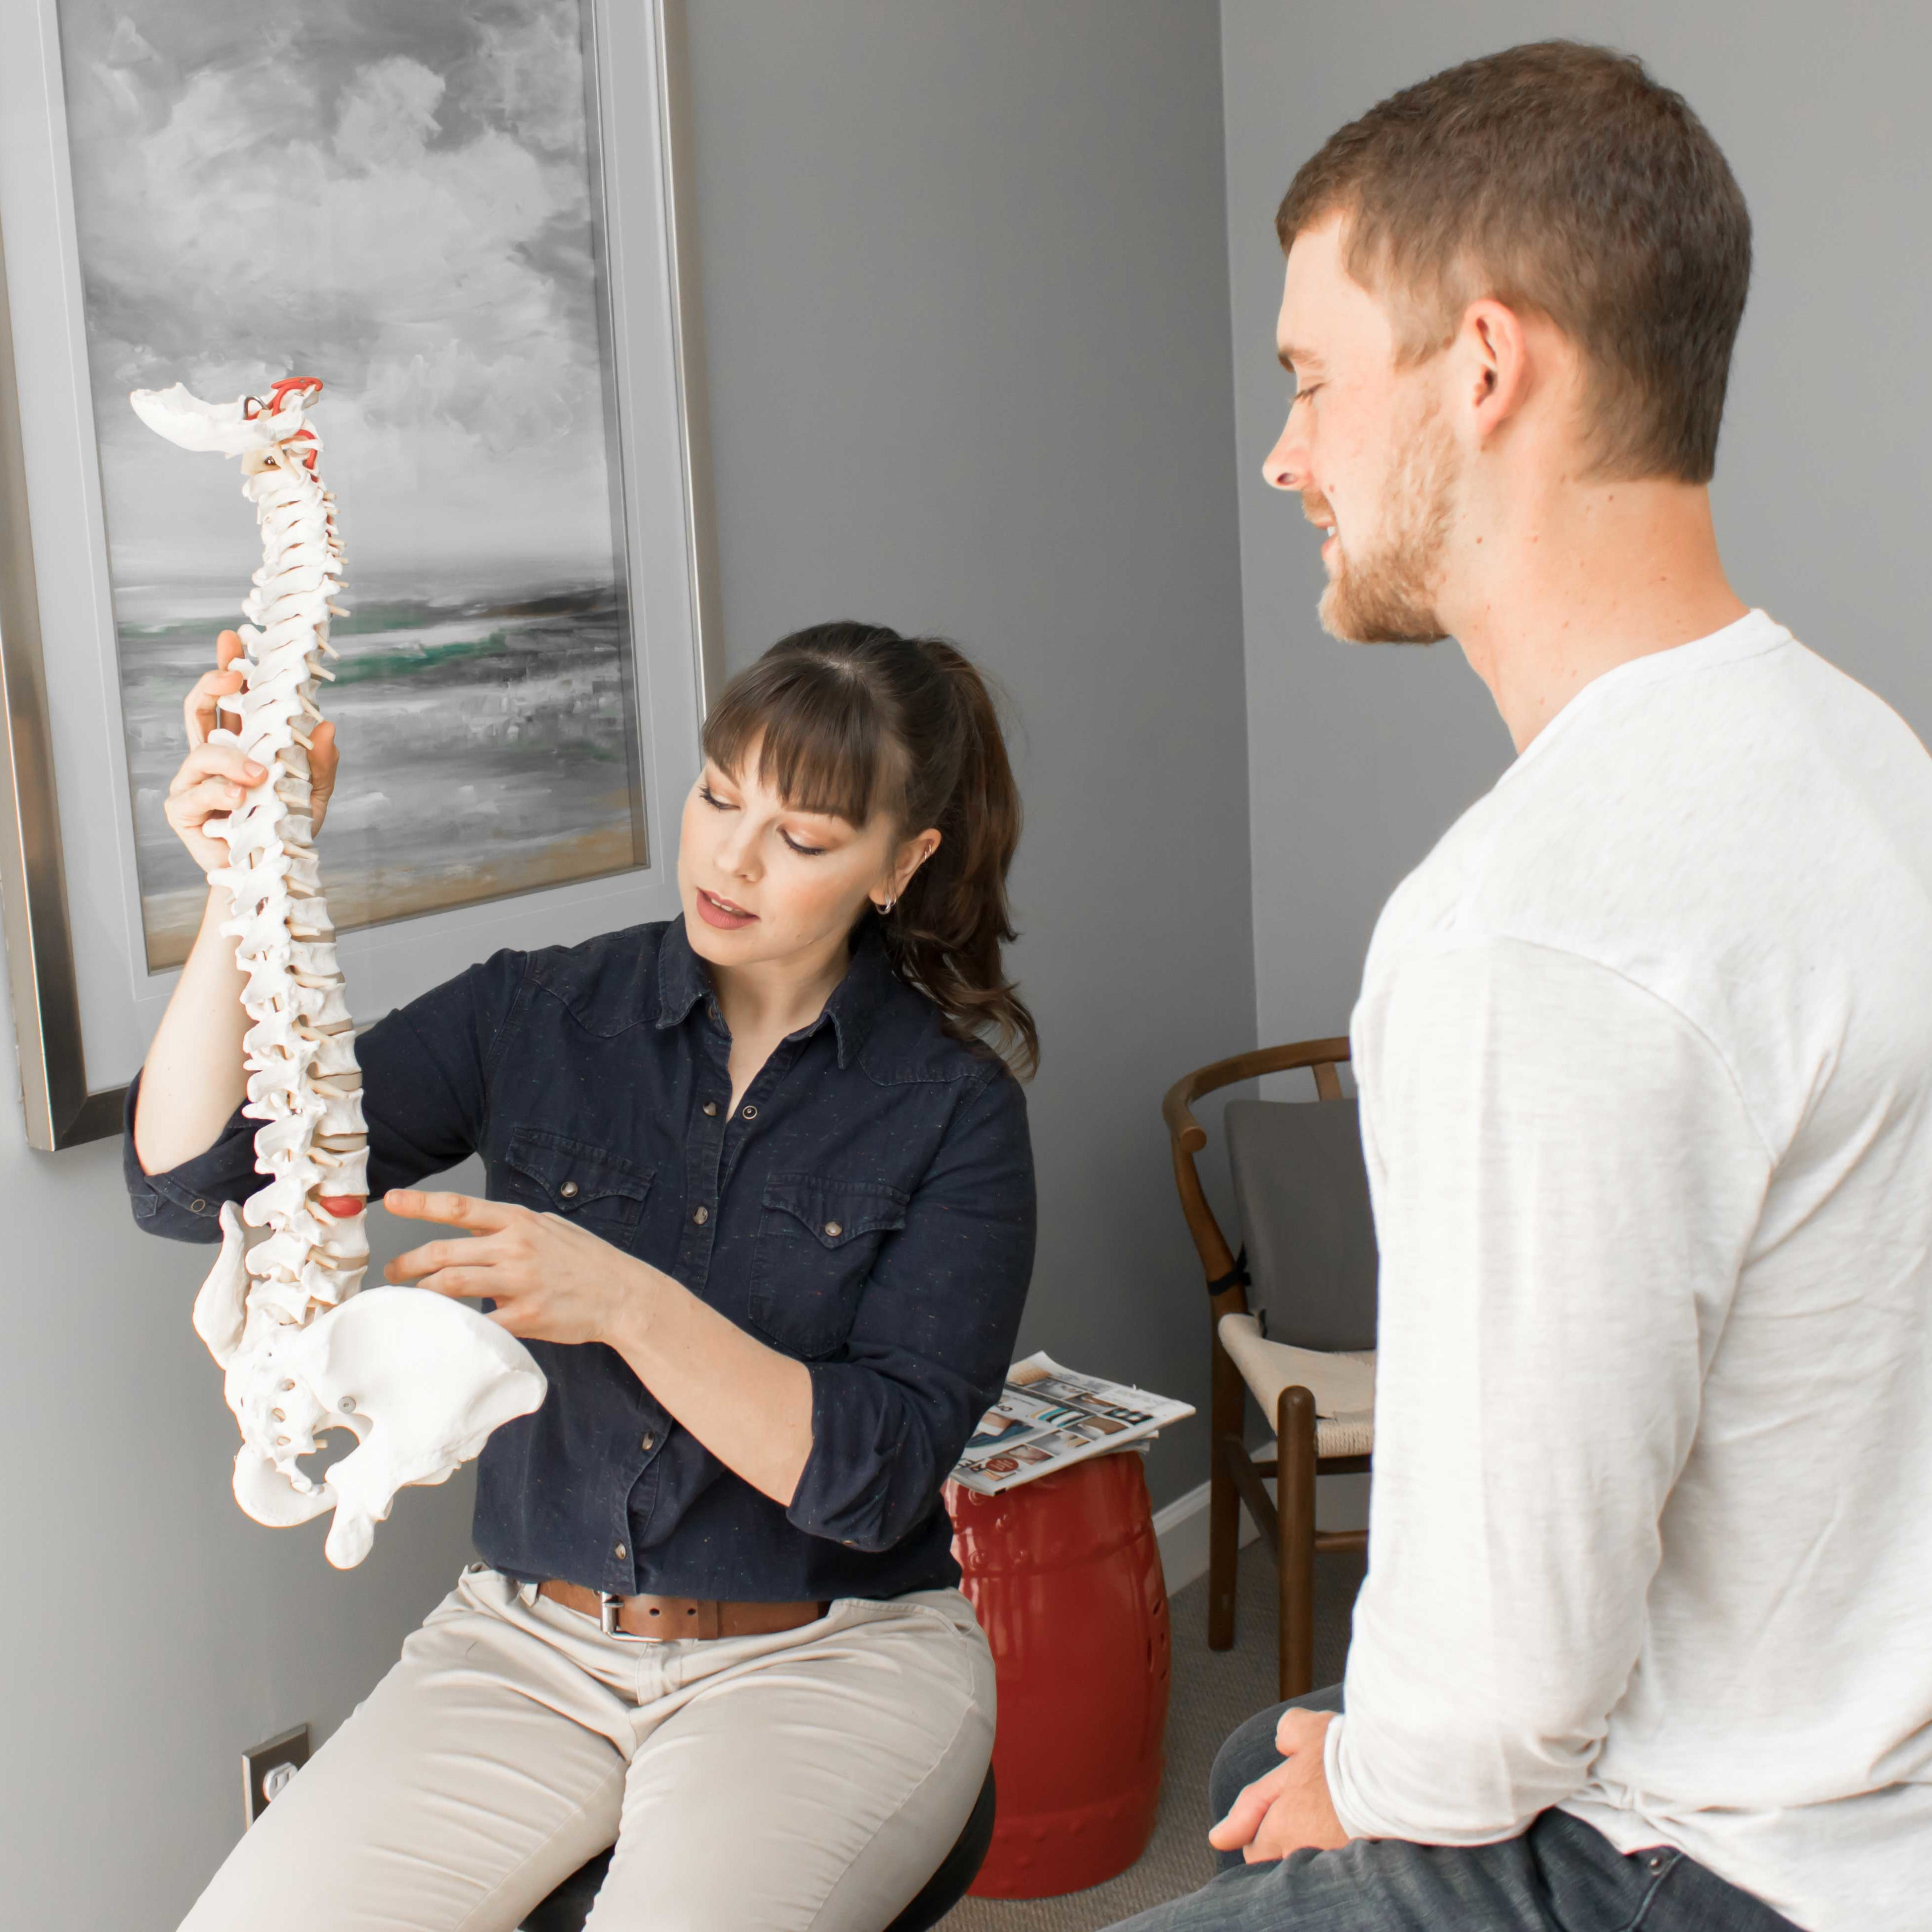 Dr Maggie Chiropractor explaining spinal anatomy to patient